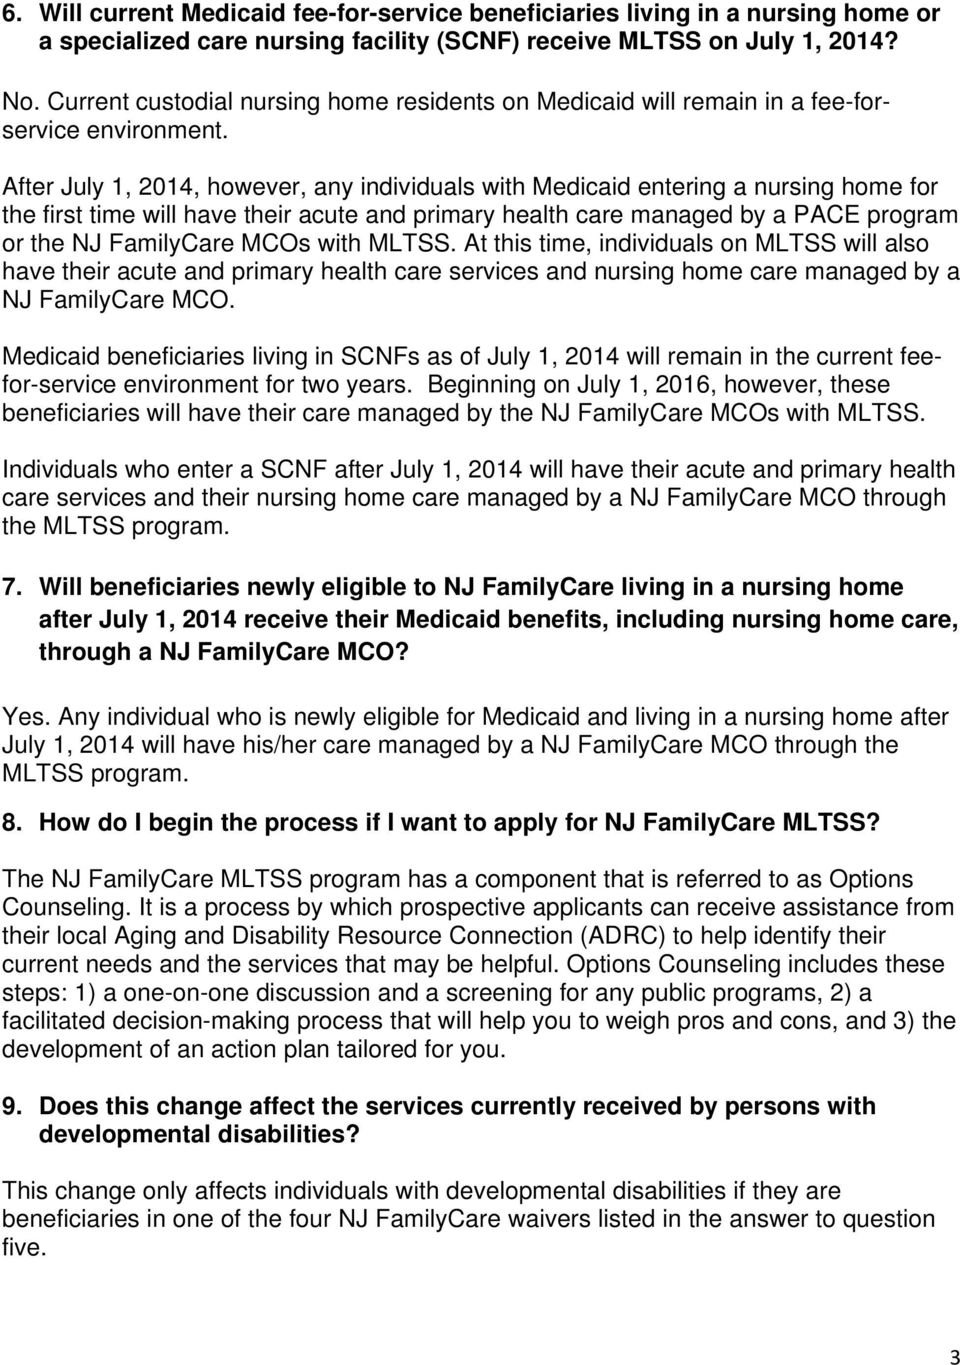 After July 1, 2014, however, any individuals with Medicaid entering a nursing home for the first time will have their acute and primary health care managed by a PACE program or the NJ FamilyCare MCOs